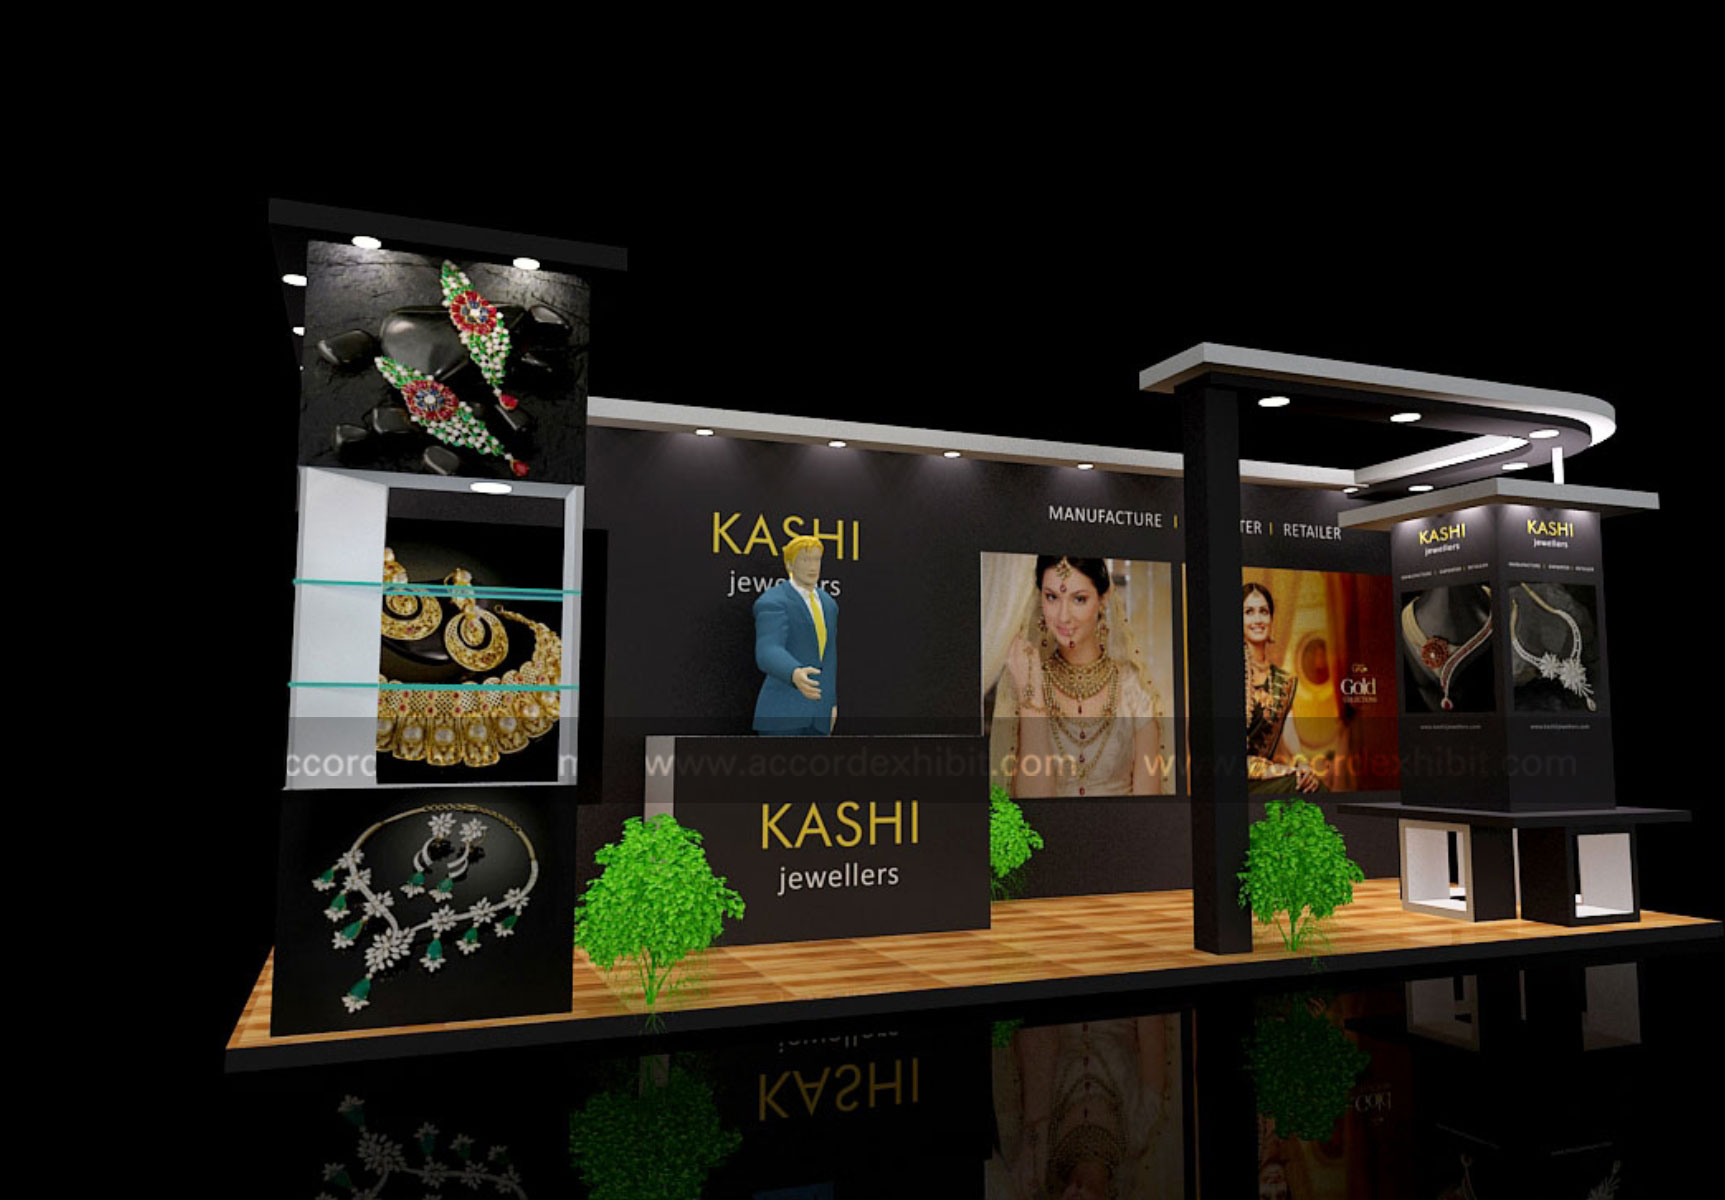 Exhibition Stall for Kashi Jewelers